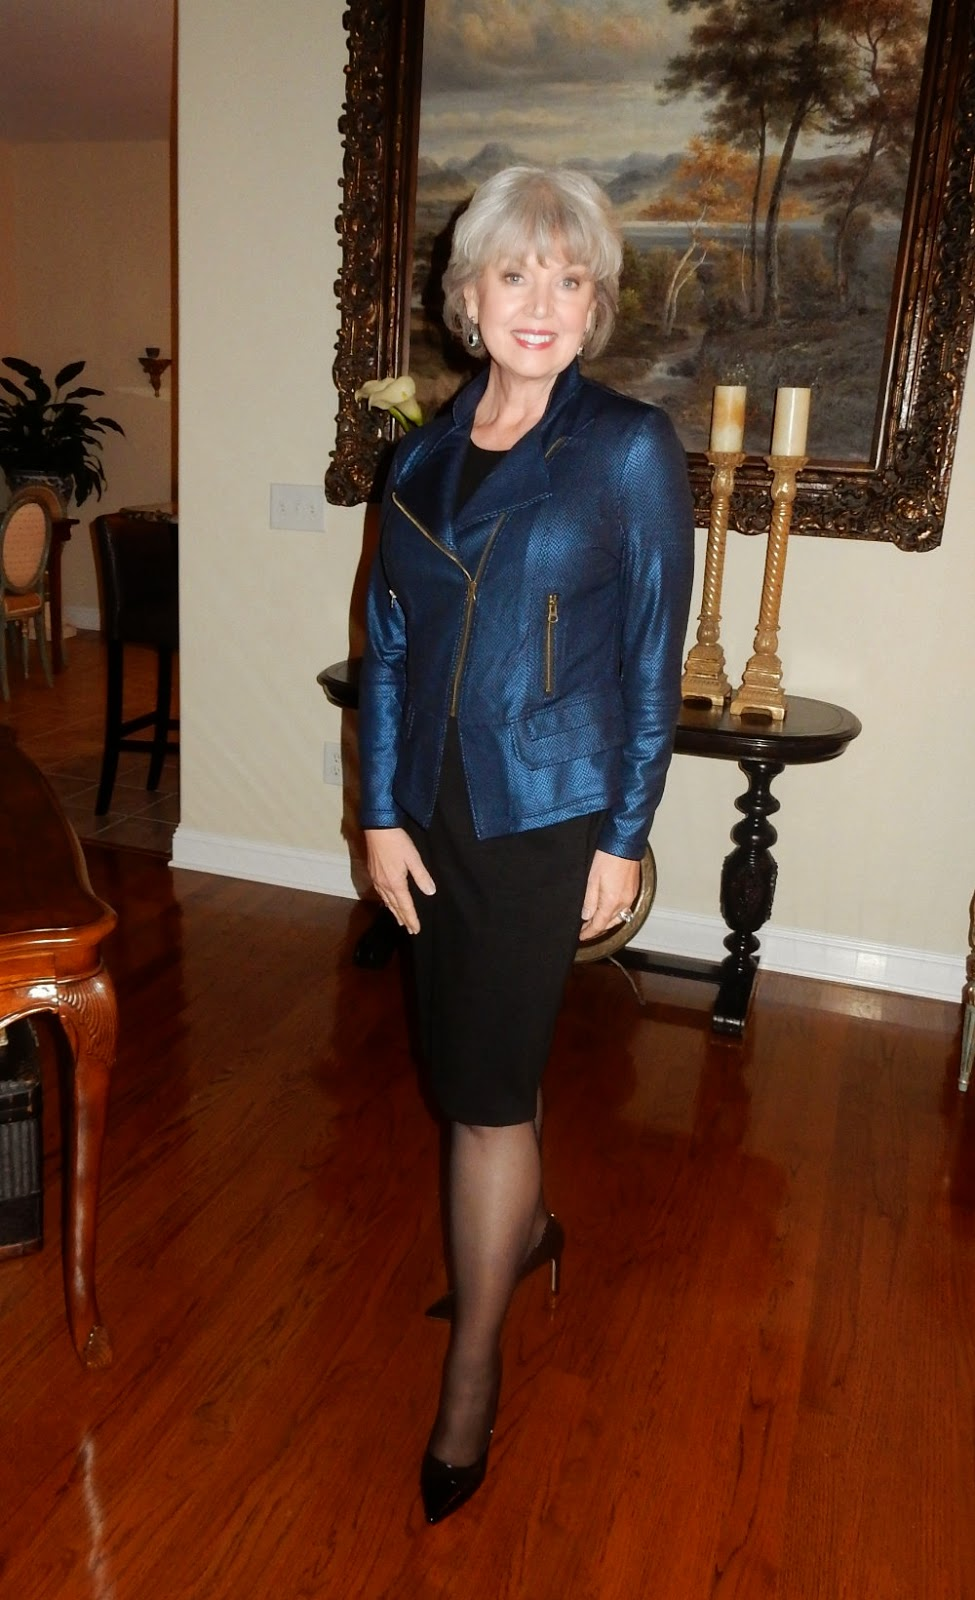 blakely cougar women Susan blakely has been cast in a horribly exciting new role the veteran actress (men of a certain age, southland) will appear this season on cougar town, tv line confirms, portraying ellie's mother and initially making a positive impression on ellie's friends but that won't last very long an abc.